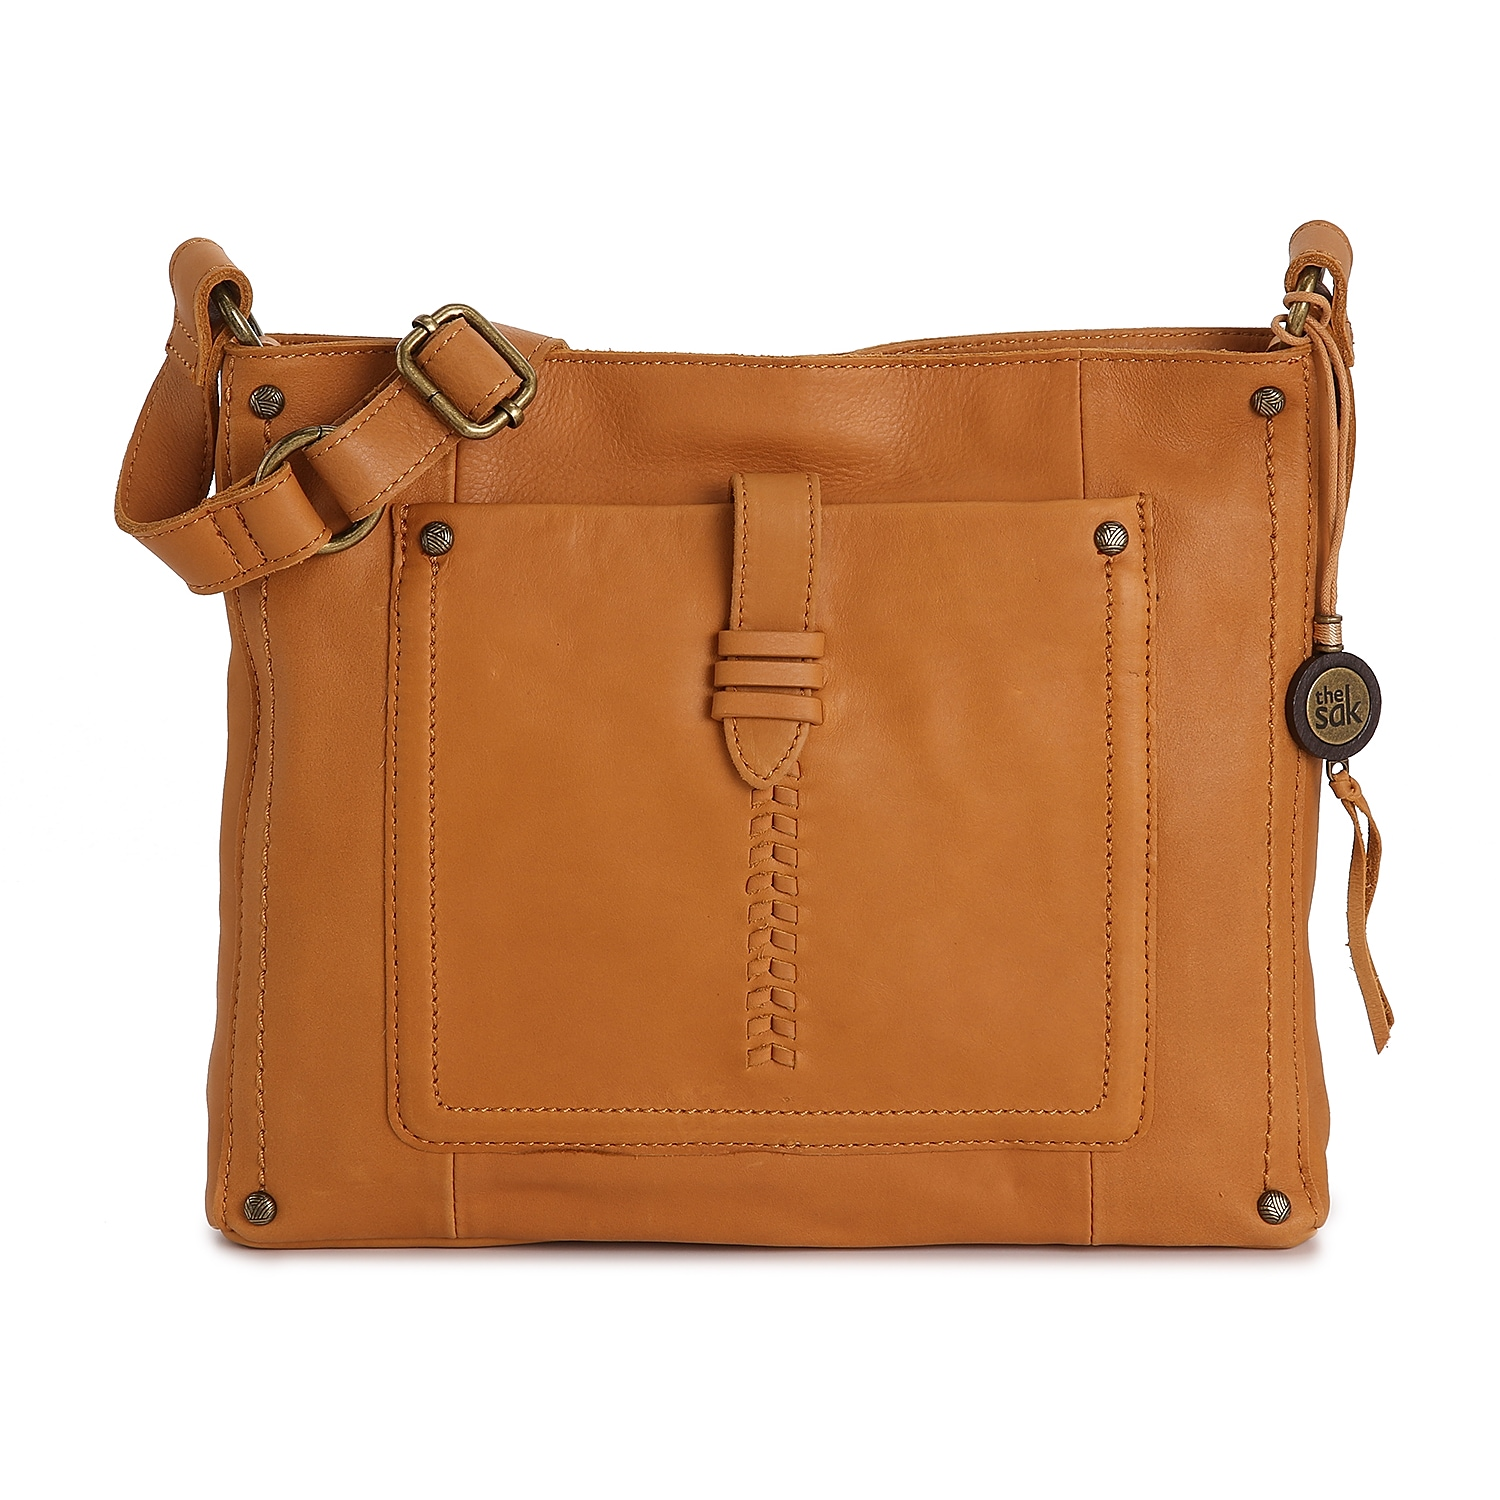 A structured square shape defines the Heritage shoulder bag from The Sak. This leather crossbody features a smooth finish and coordinating metal hardware for a hint of metallic shine.